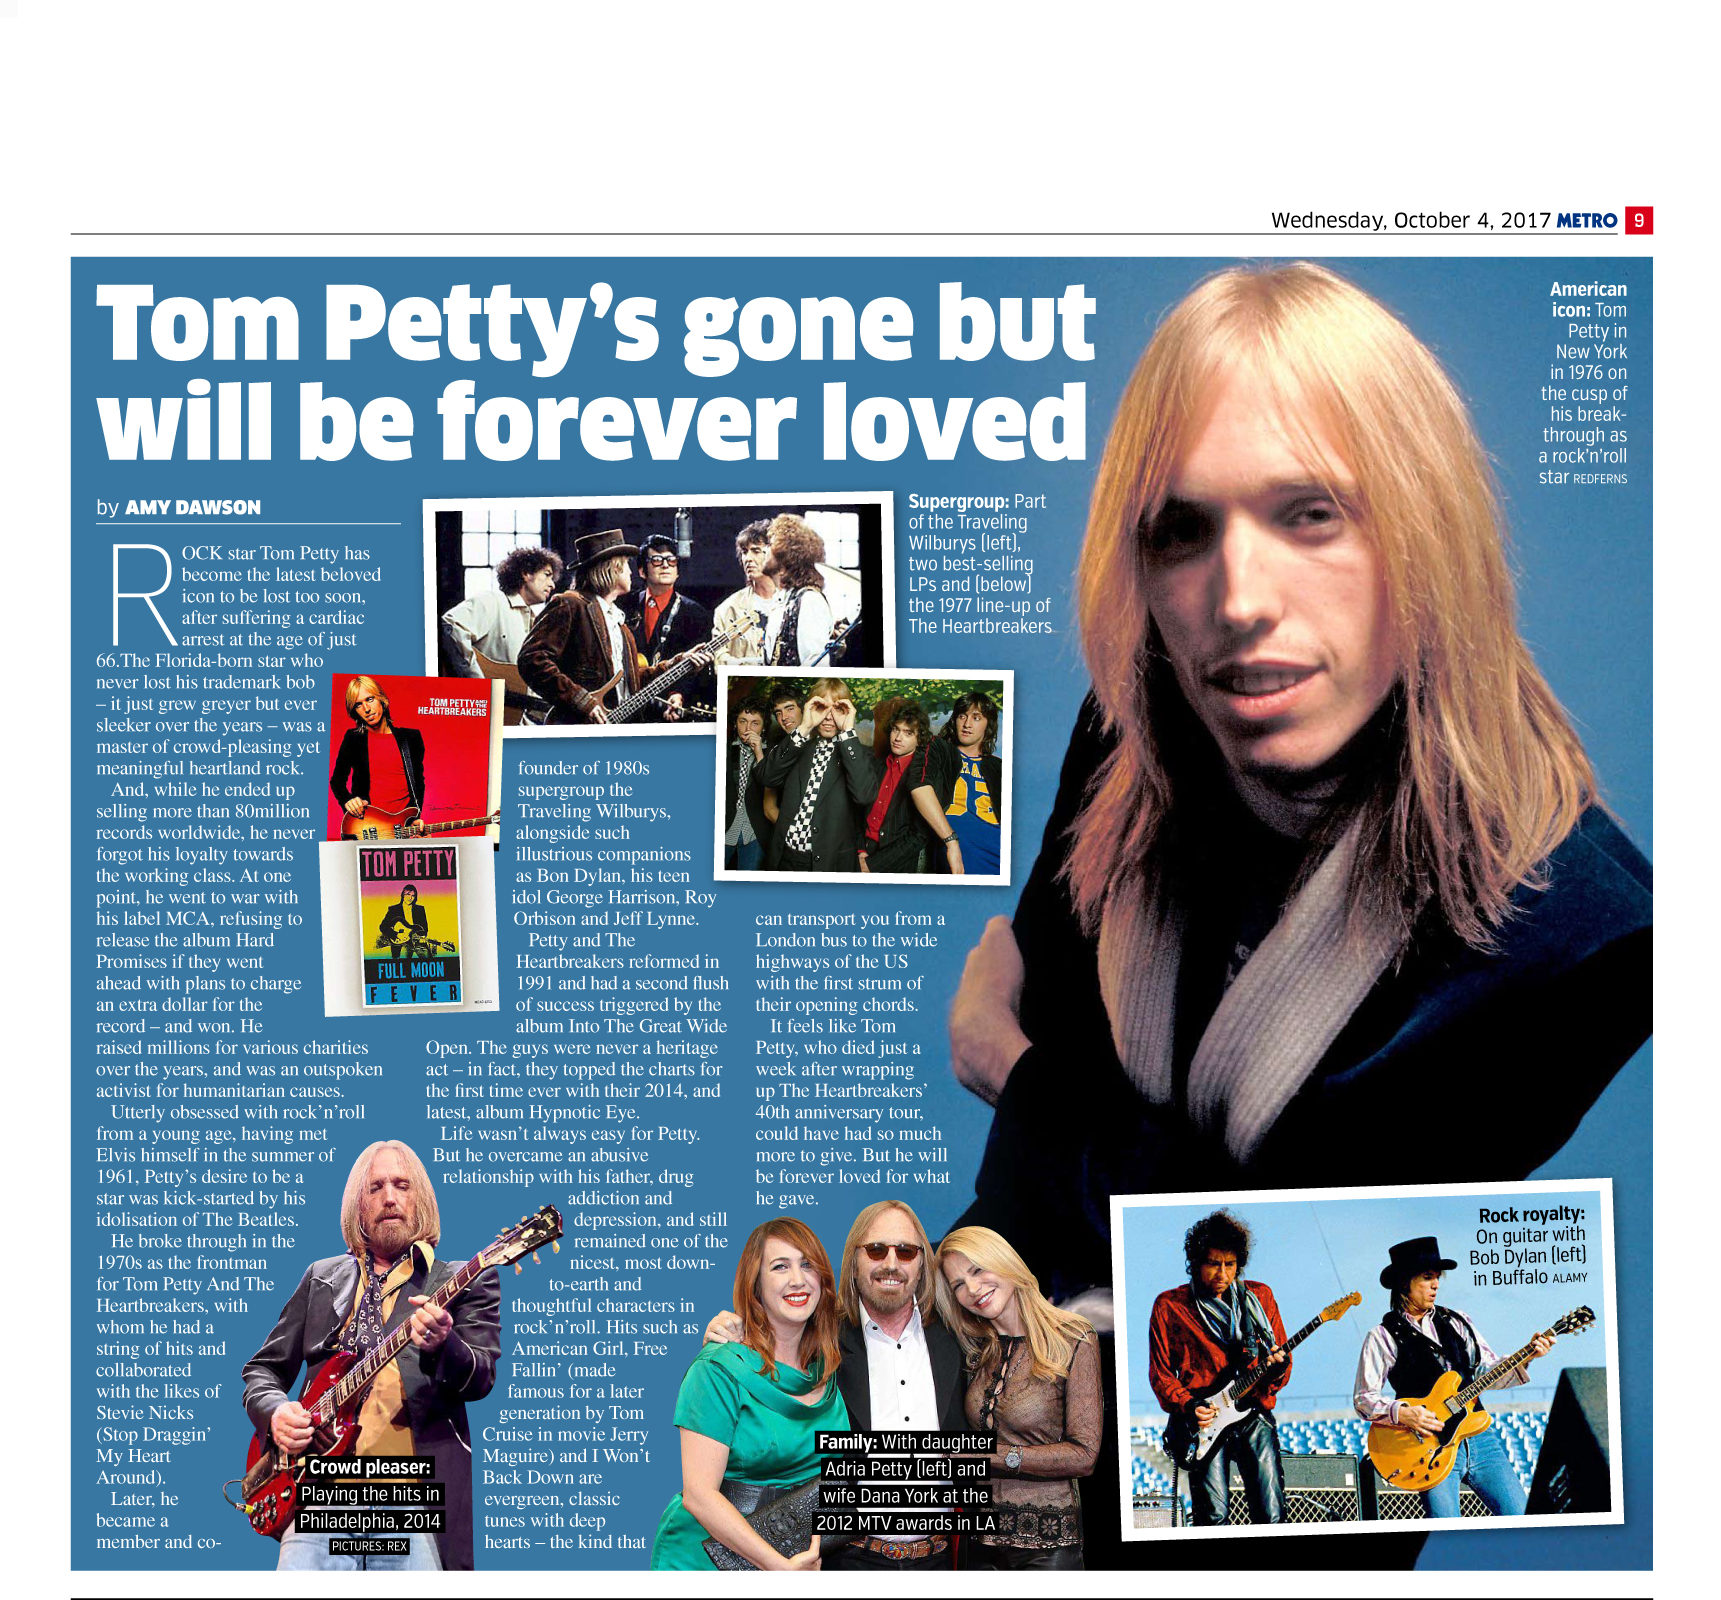 Tom Petty's Gone But Will Be Forever Loved (Metro, 4th Oct 2017)